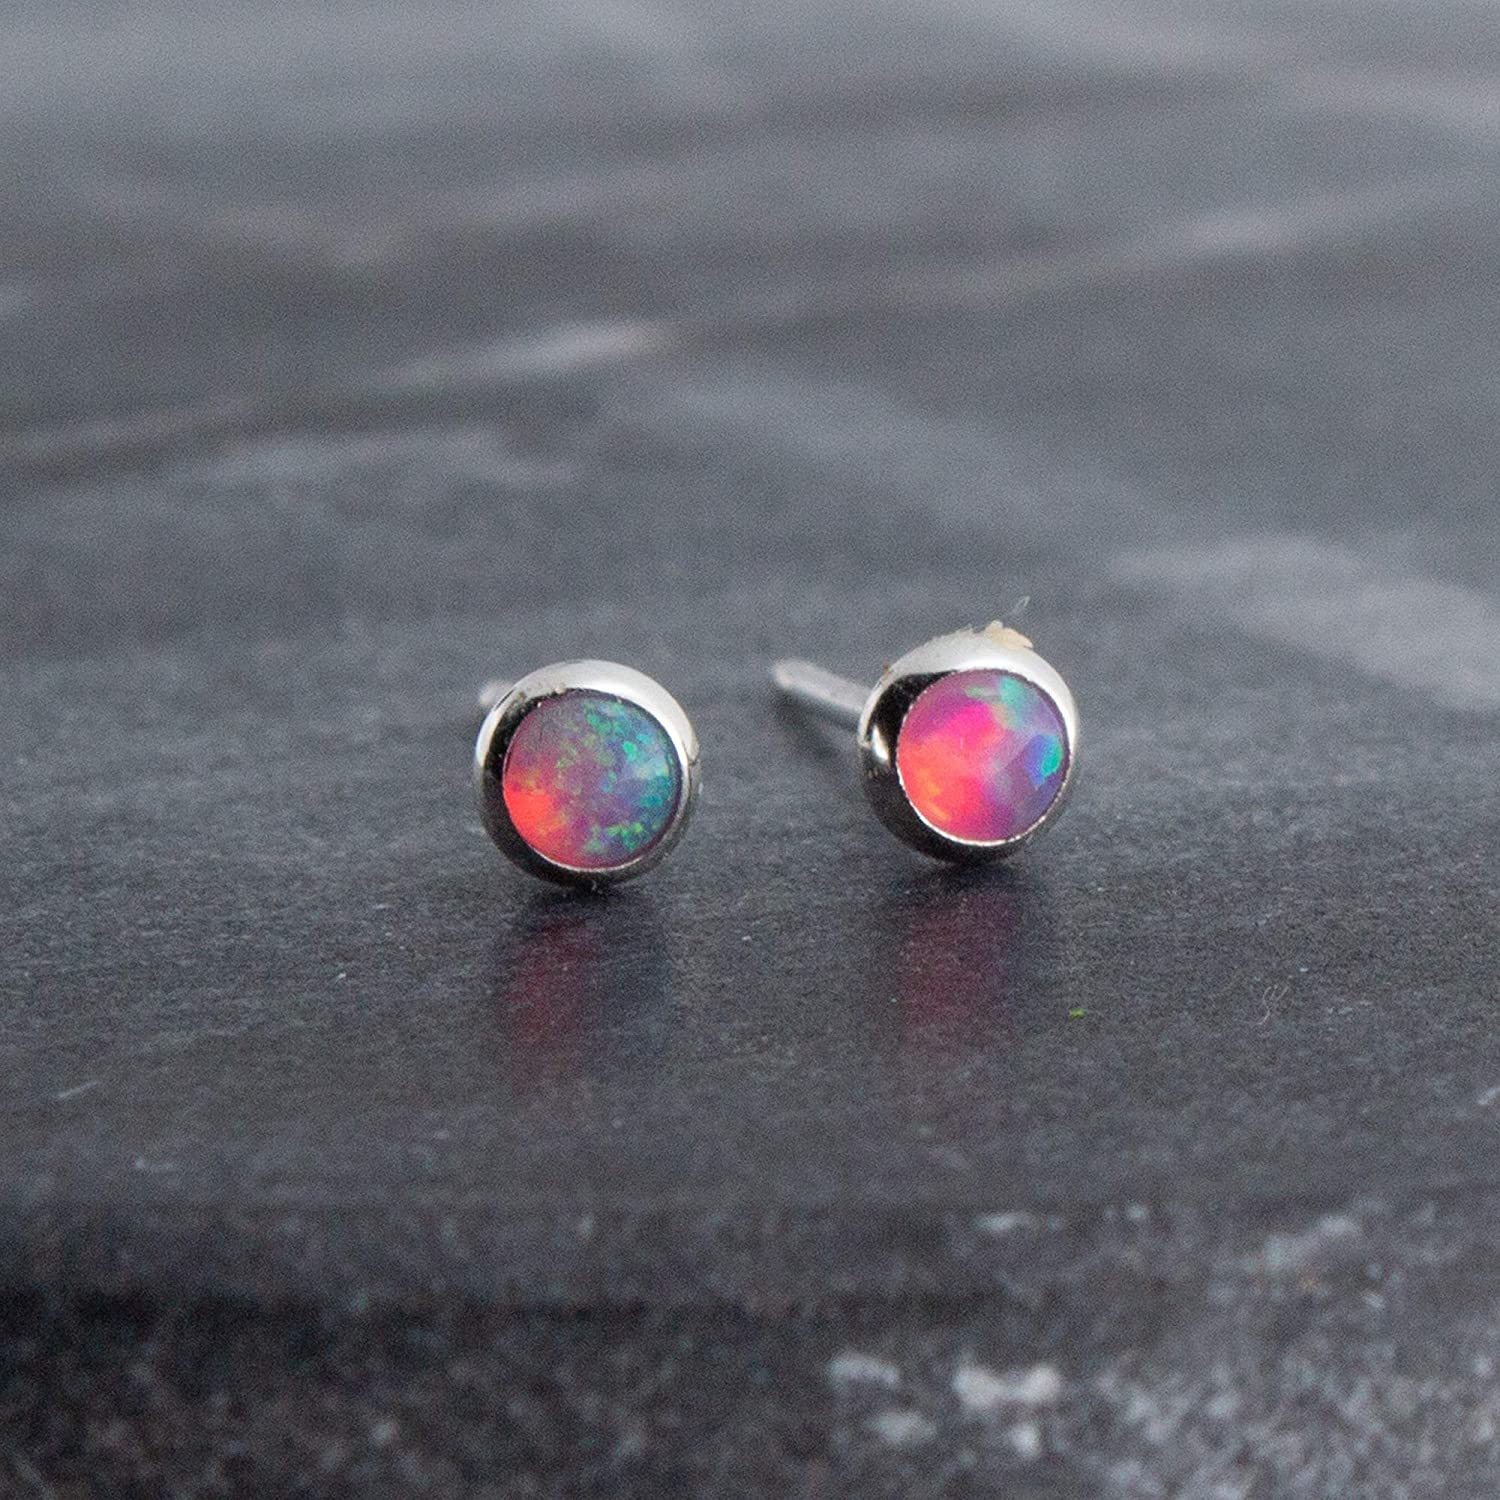 Blank Setting Oval Cabochon Earrings Stud Sterling Silver 5x3 to 9x7 Oval Serrated Cabochon Post Earring Mounting